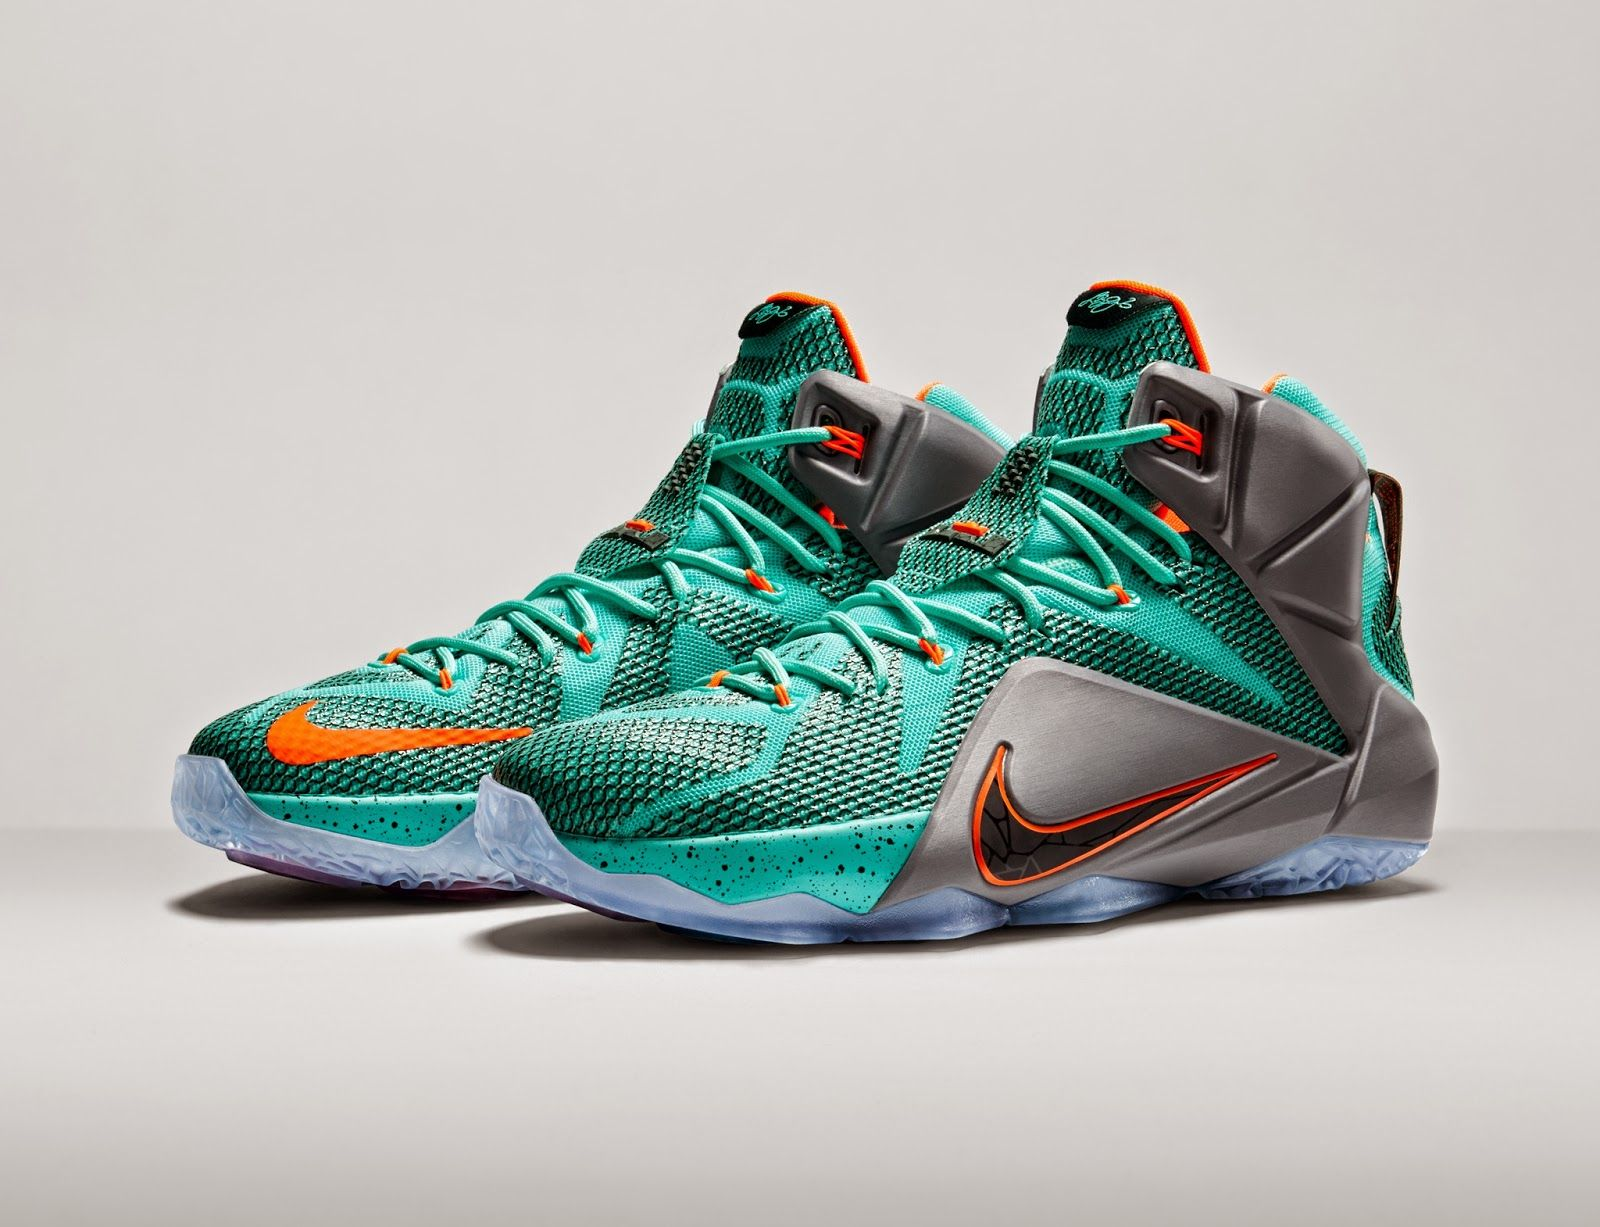 on sale 0d0d9 de5a9 Nike reveals additional LeBron 12 colorways   Sporty Guy